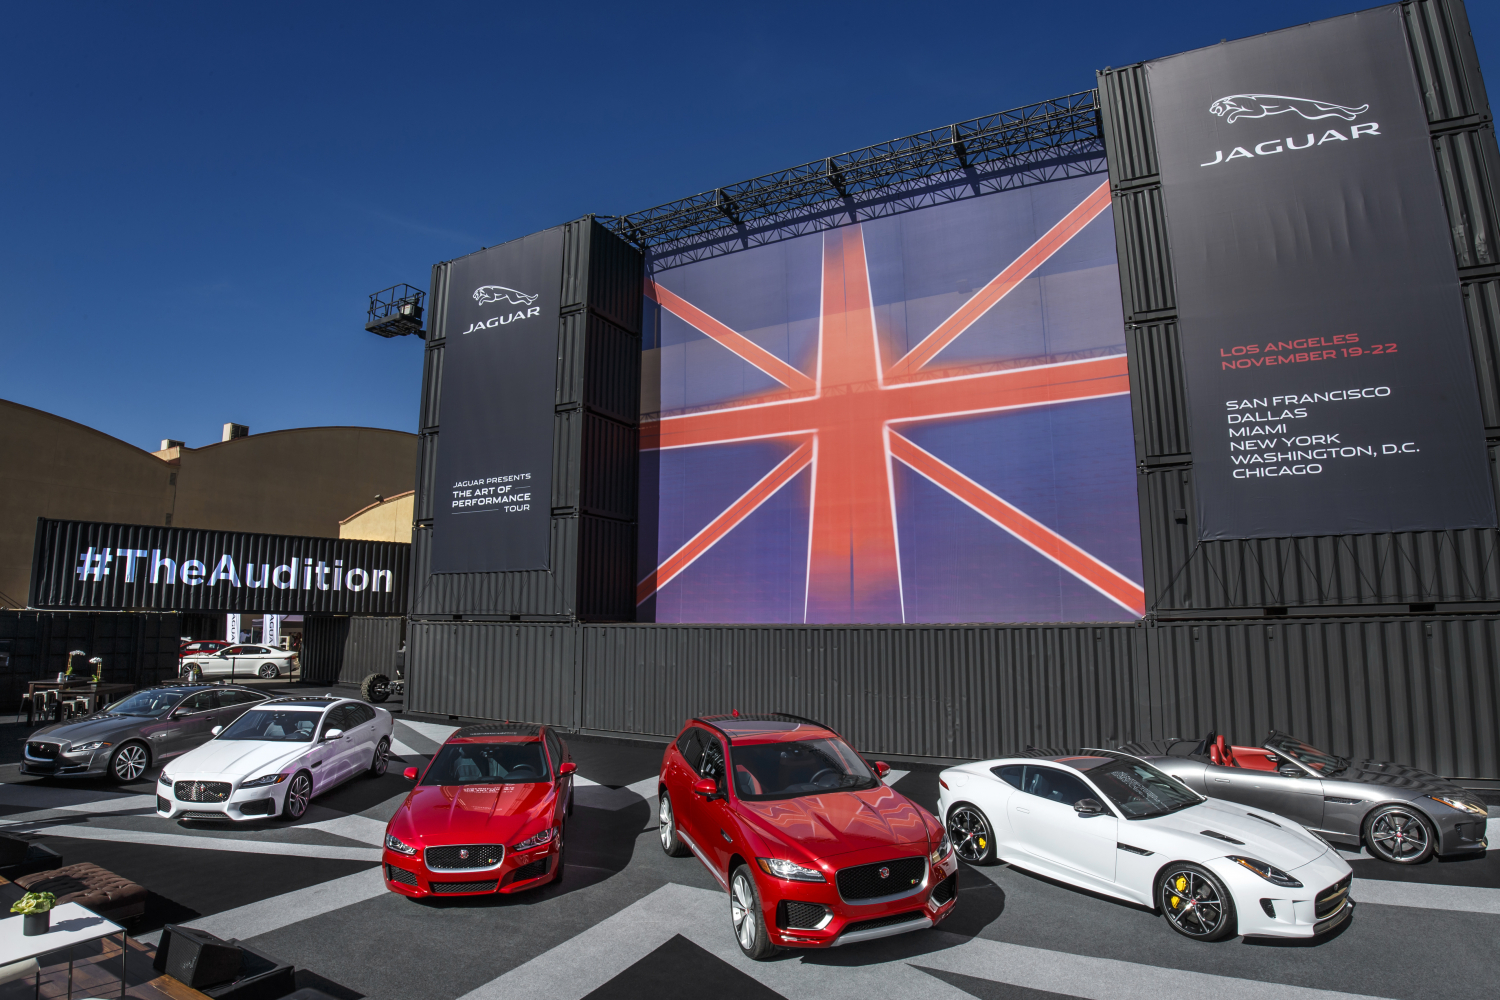 Jaguar Art Of Performance Tour Re-Imagines The Test Drive For A New Generation In The Digital Era